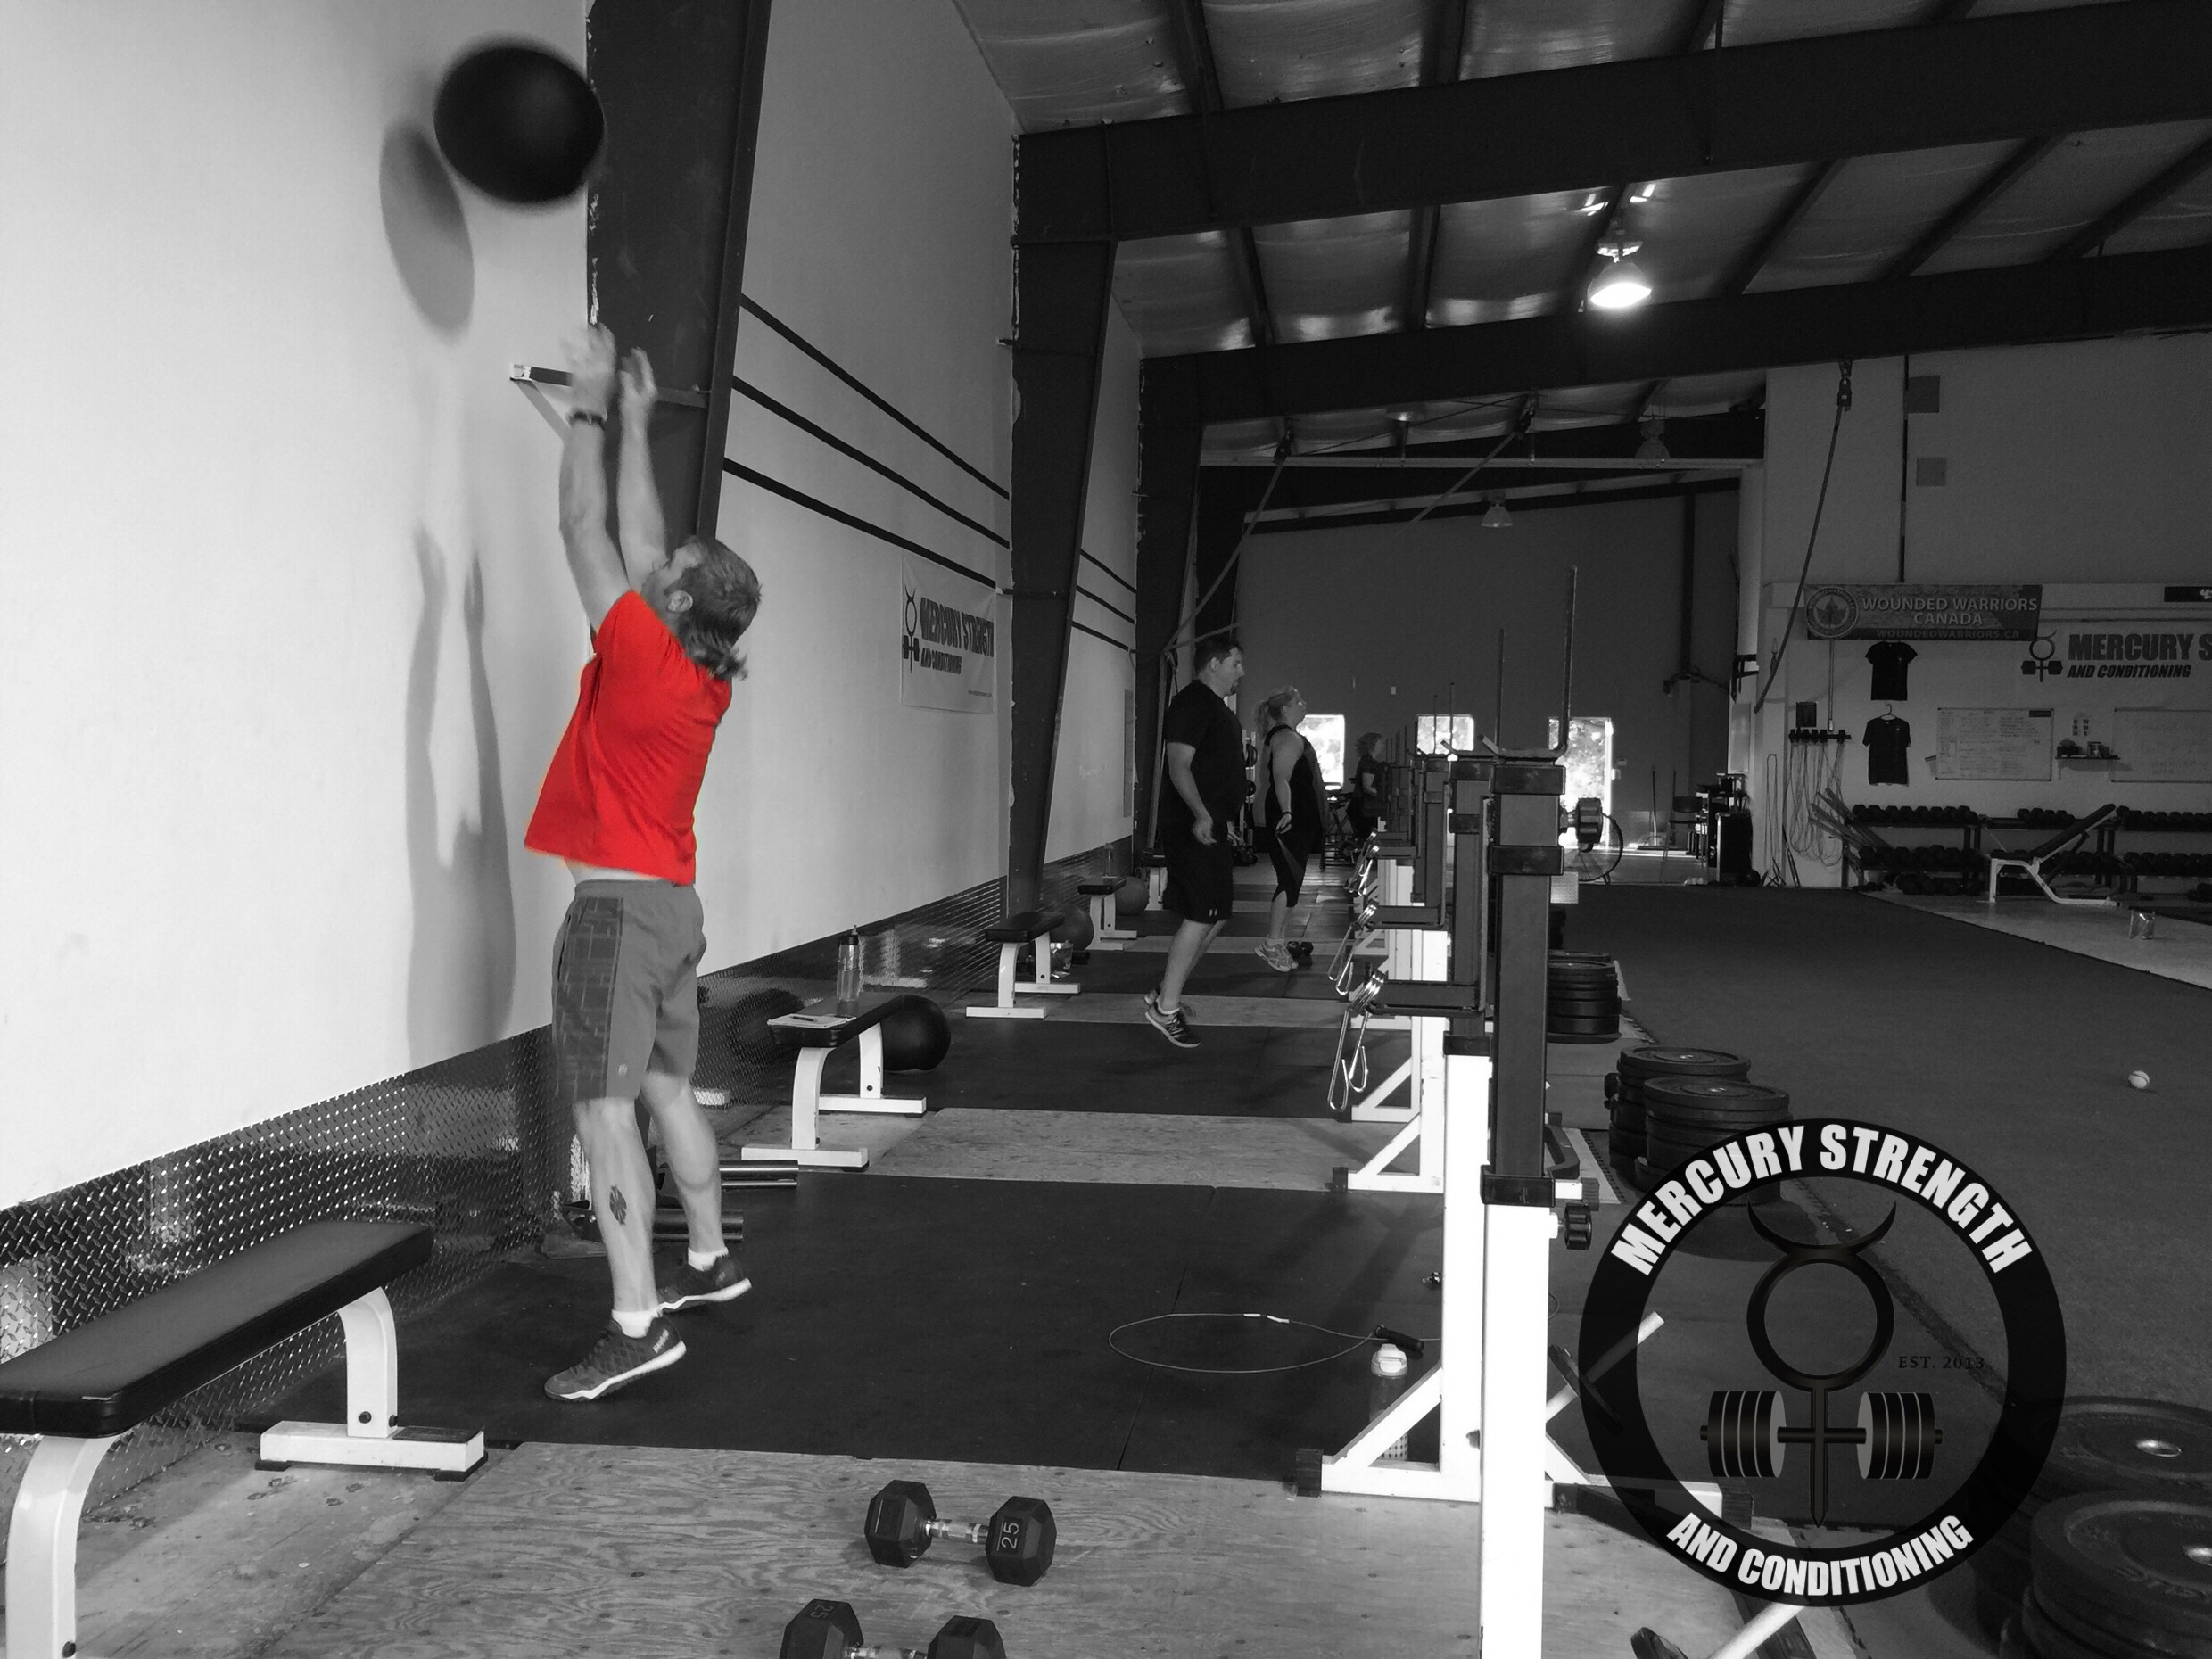 Some of the 06:30 crew cranking out some wall balls and skips!